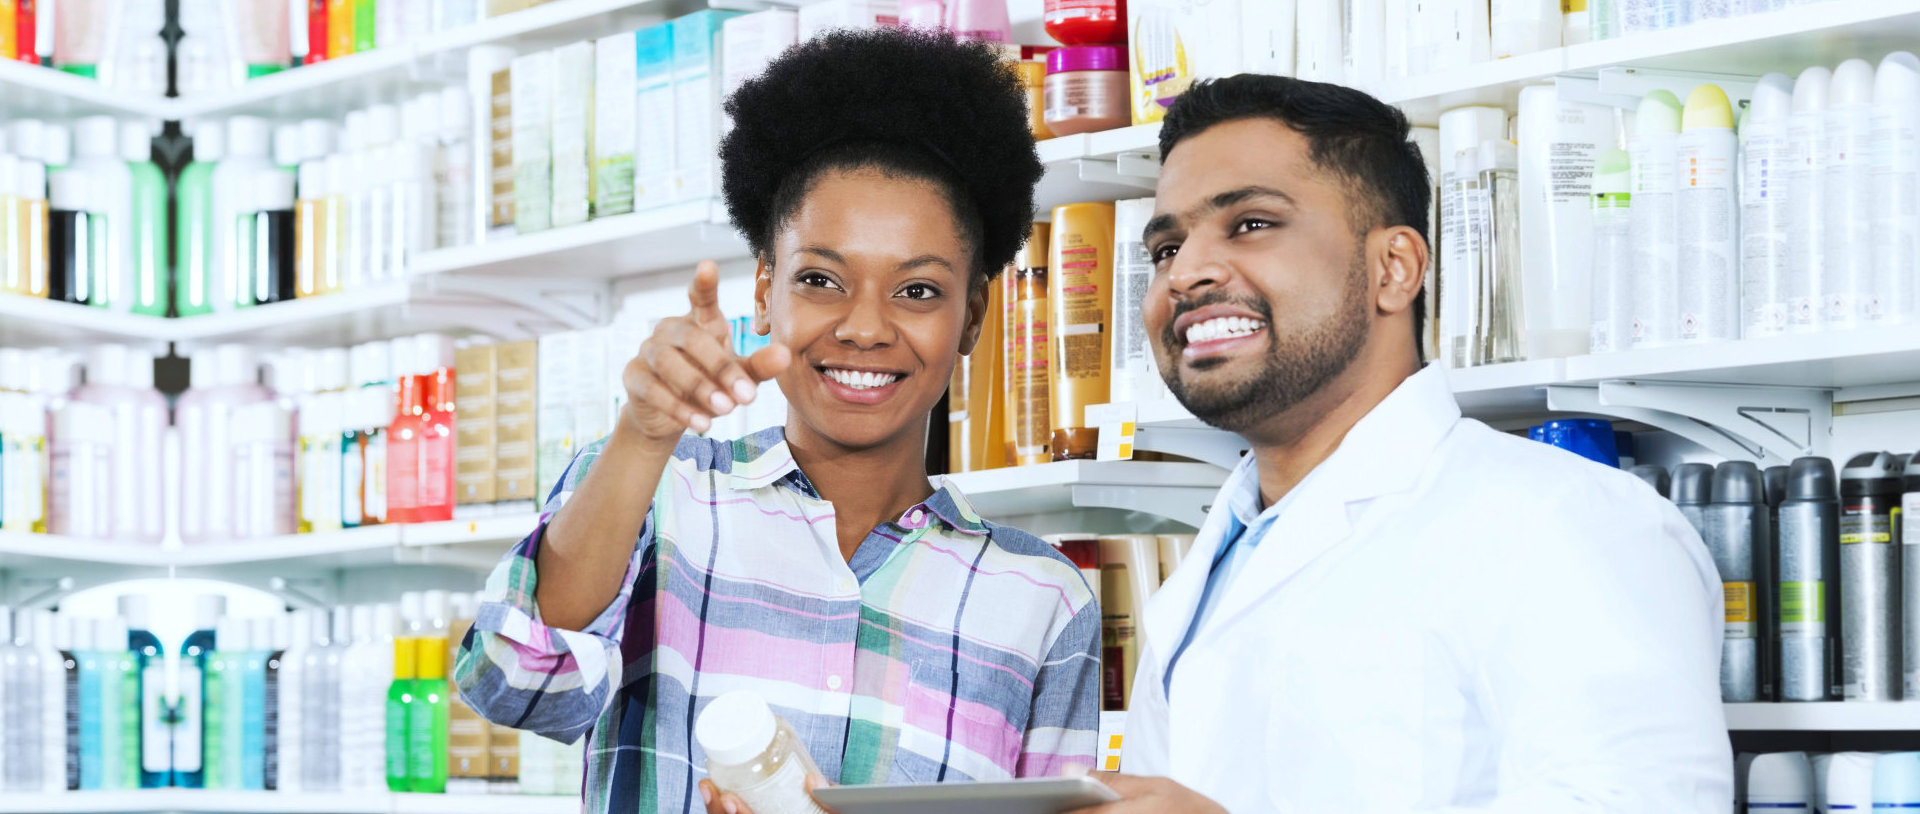 customer pointing at a pharmacy product requiring assistance with a pharmacist